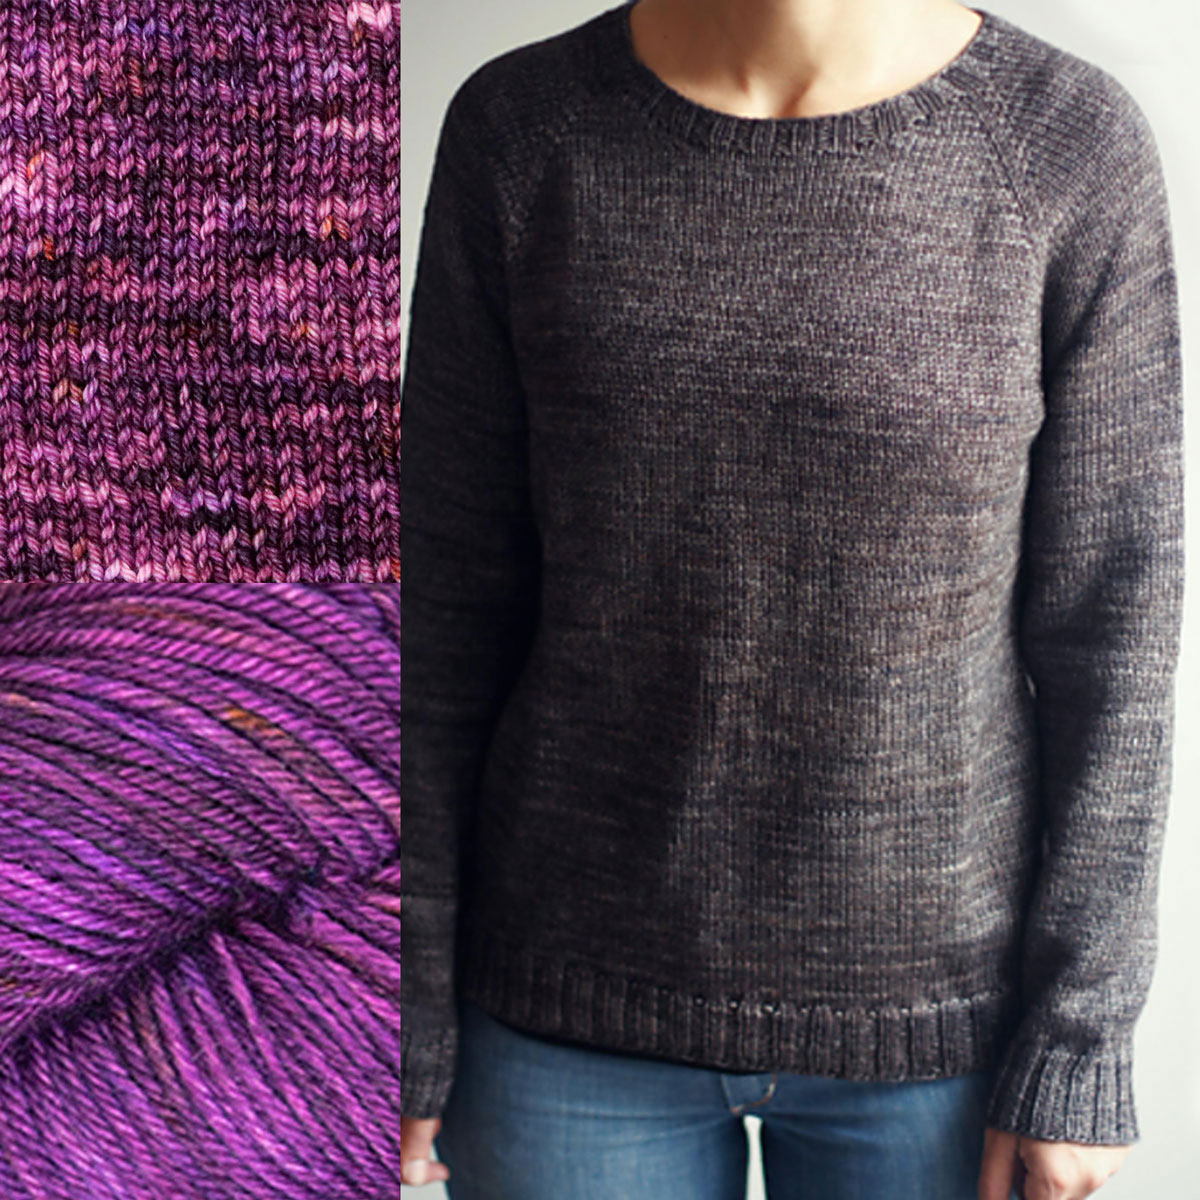 Madelinetosh Sweater Club - Sunsetter